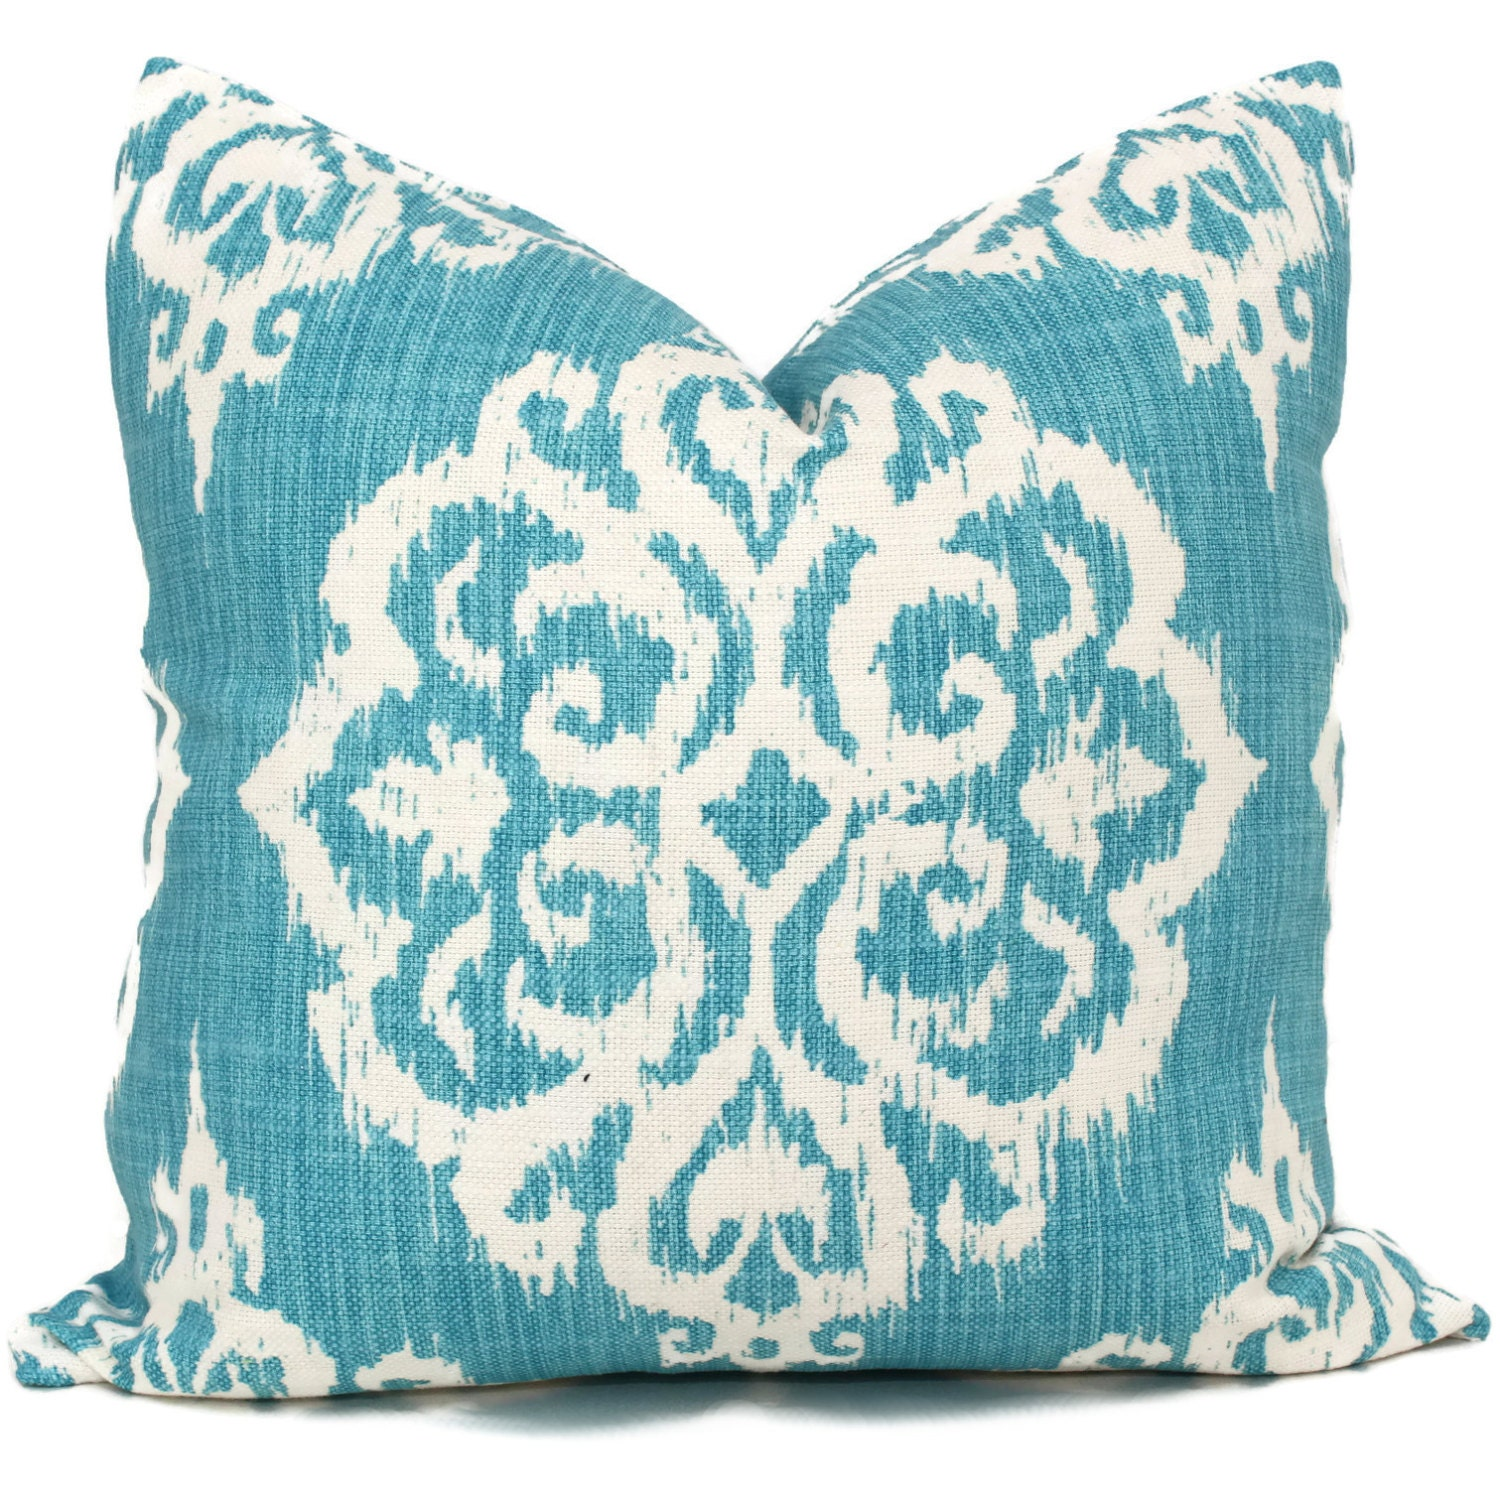 22x22 Throw Pillow Covers : Turquoise Suzani Decorative Pillow Cover 18x18 20x20 22x22